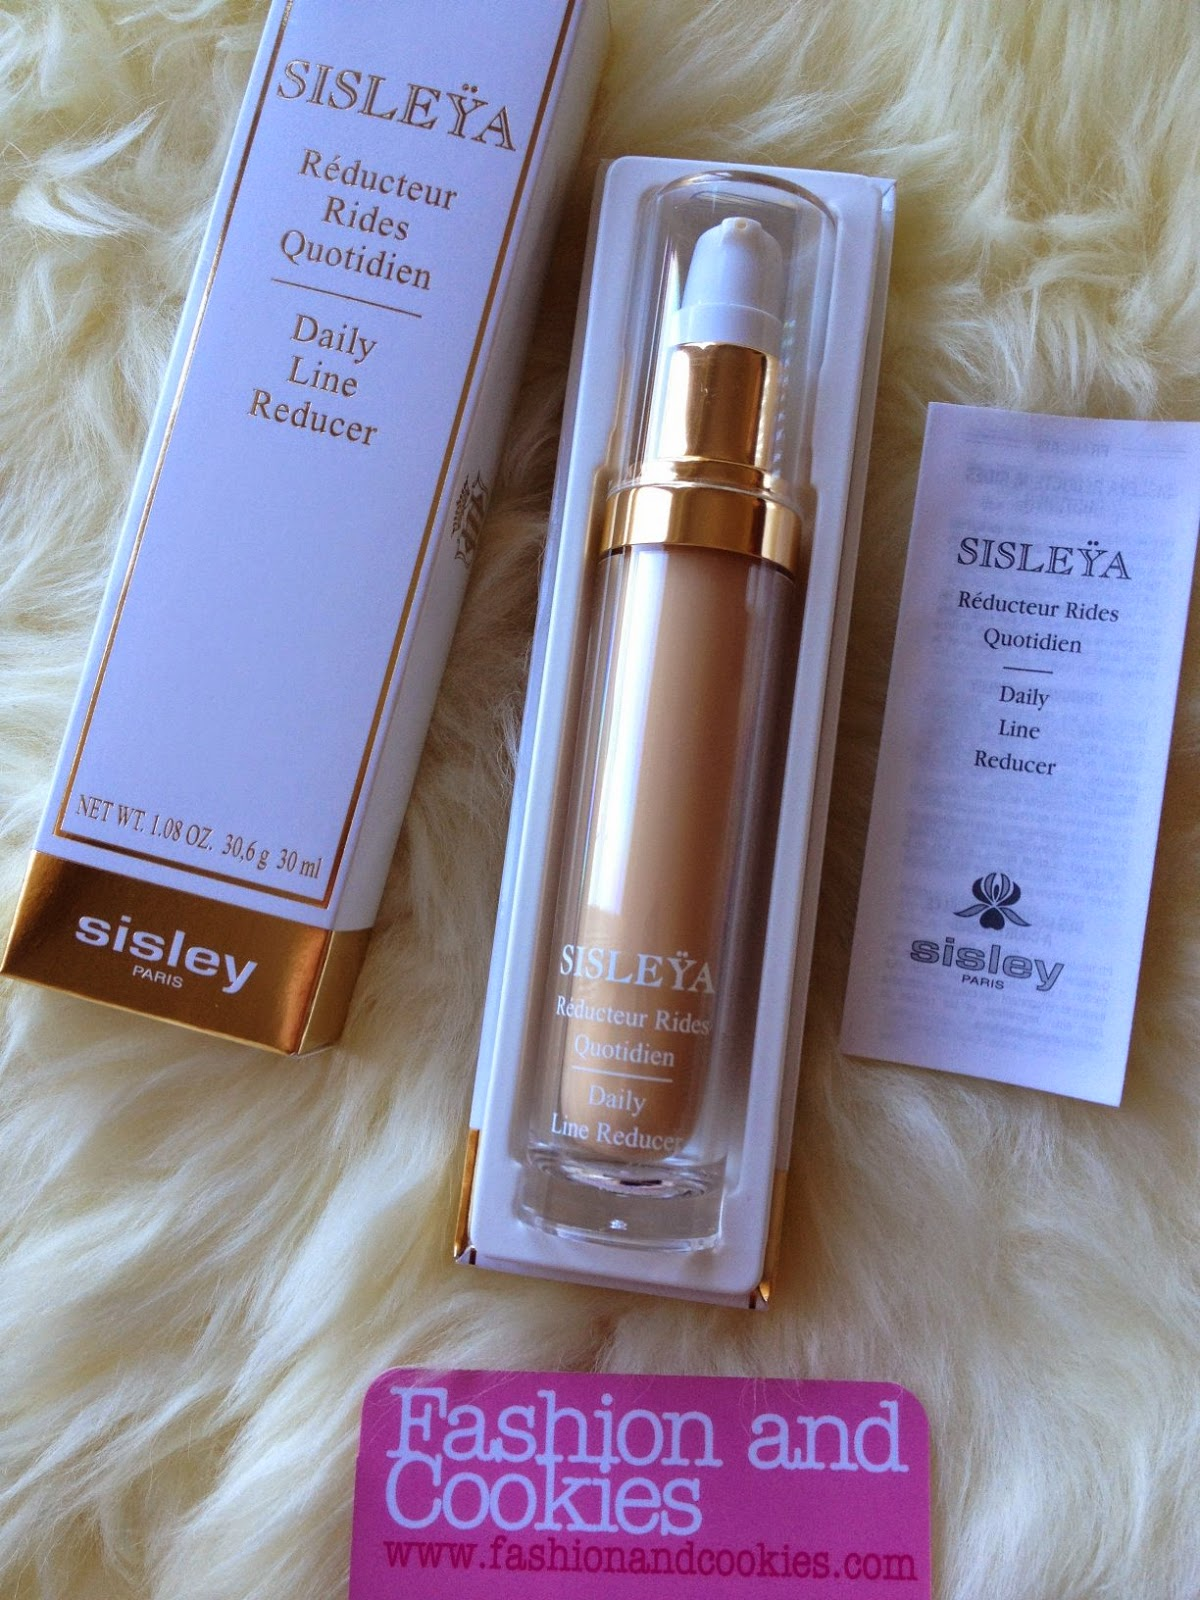 Sisley Paris Sisleya Daily Line Reducer review, Sisley Black Rose Mask, Fashion and Cookies fashion blog, fashion blogger skincare advice